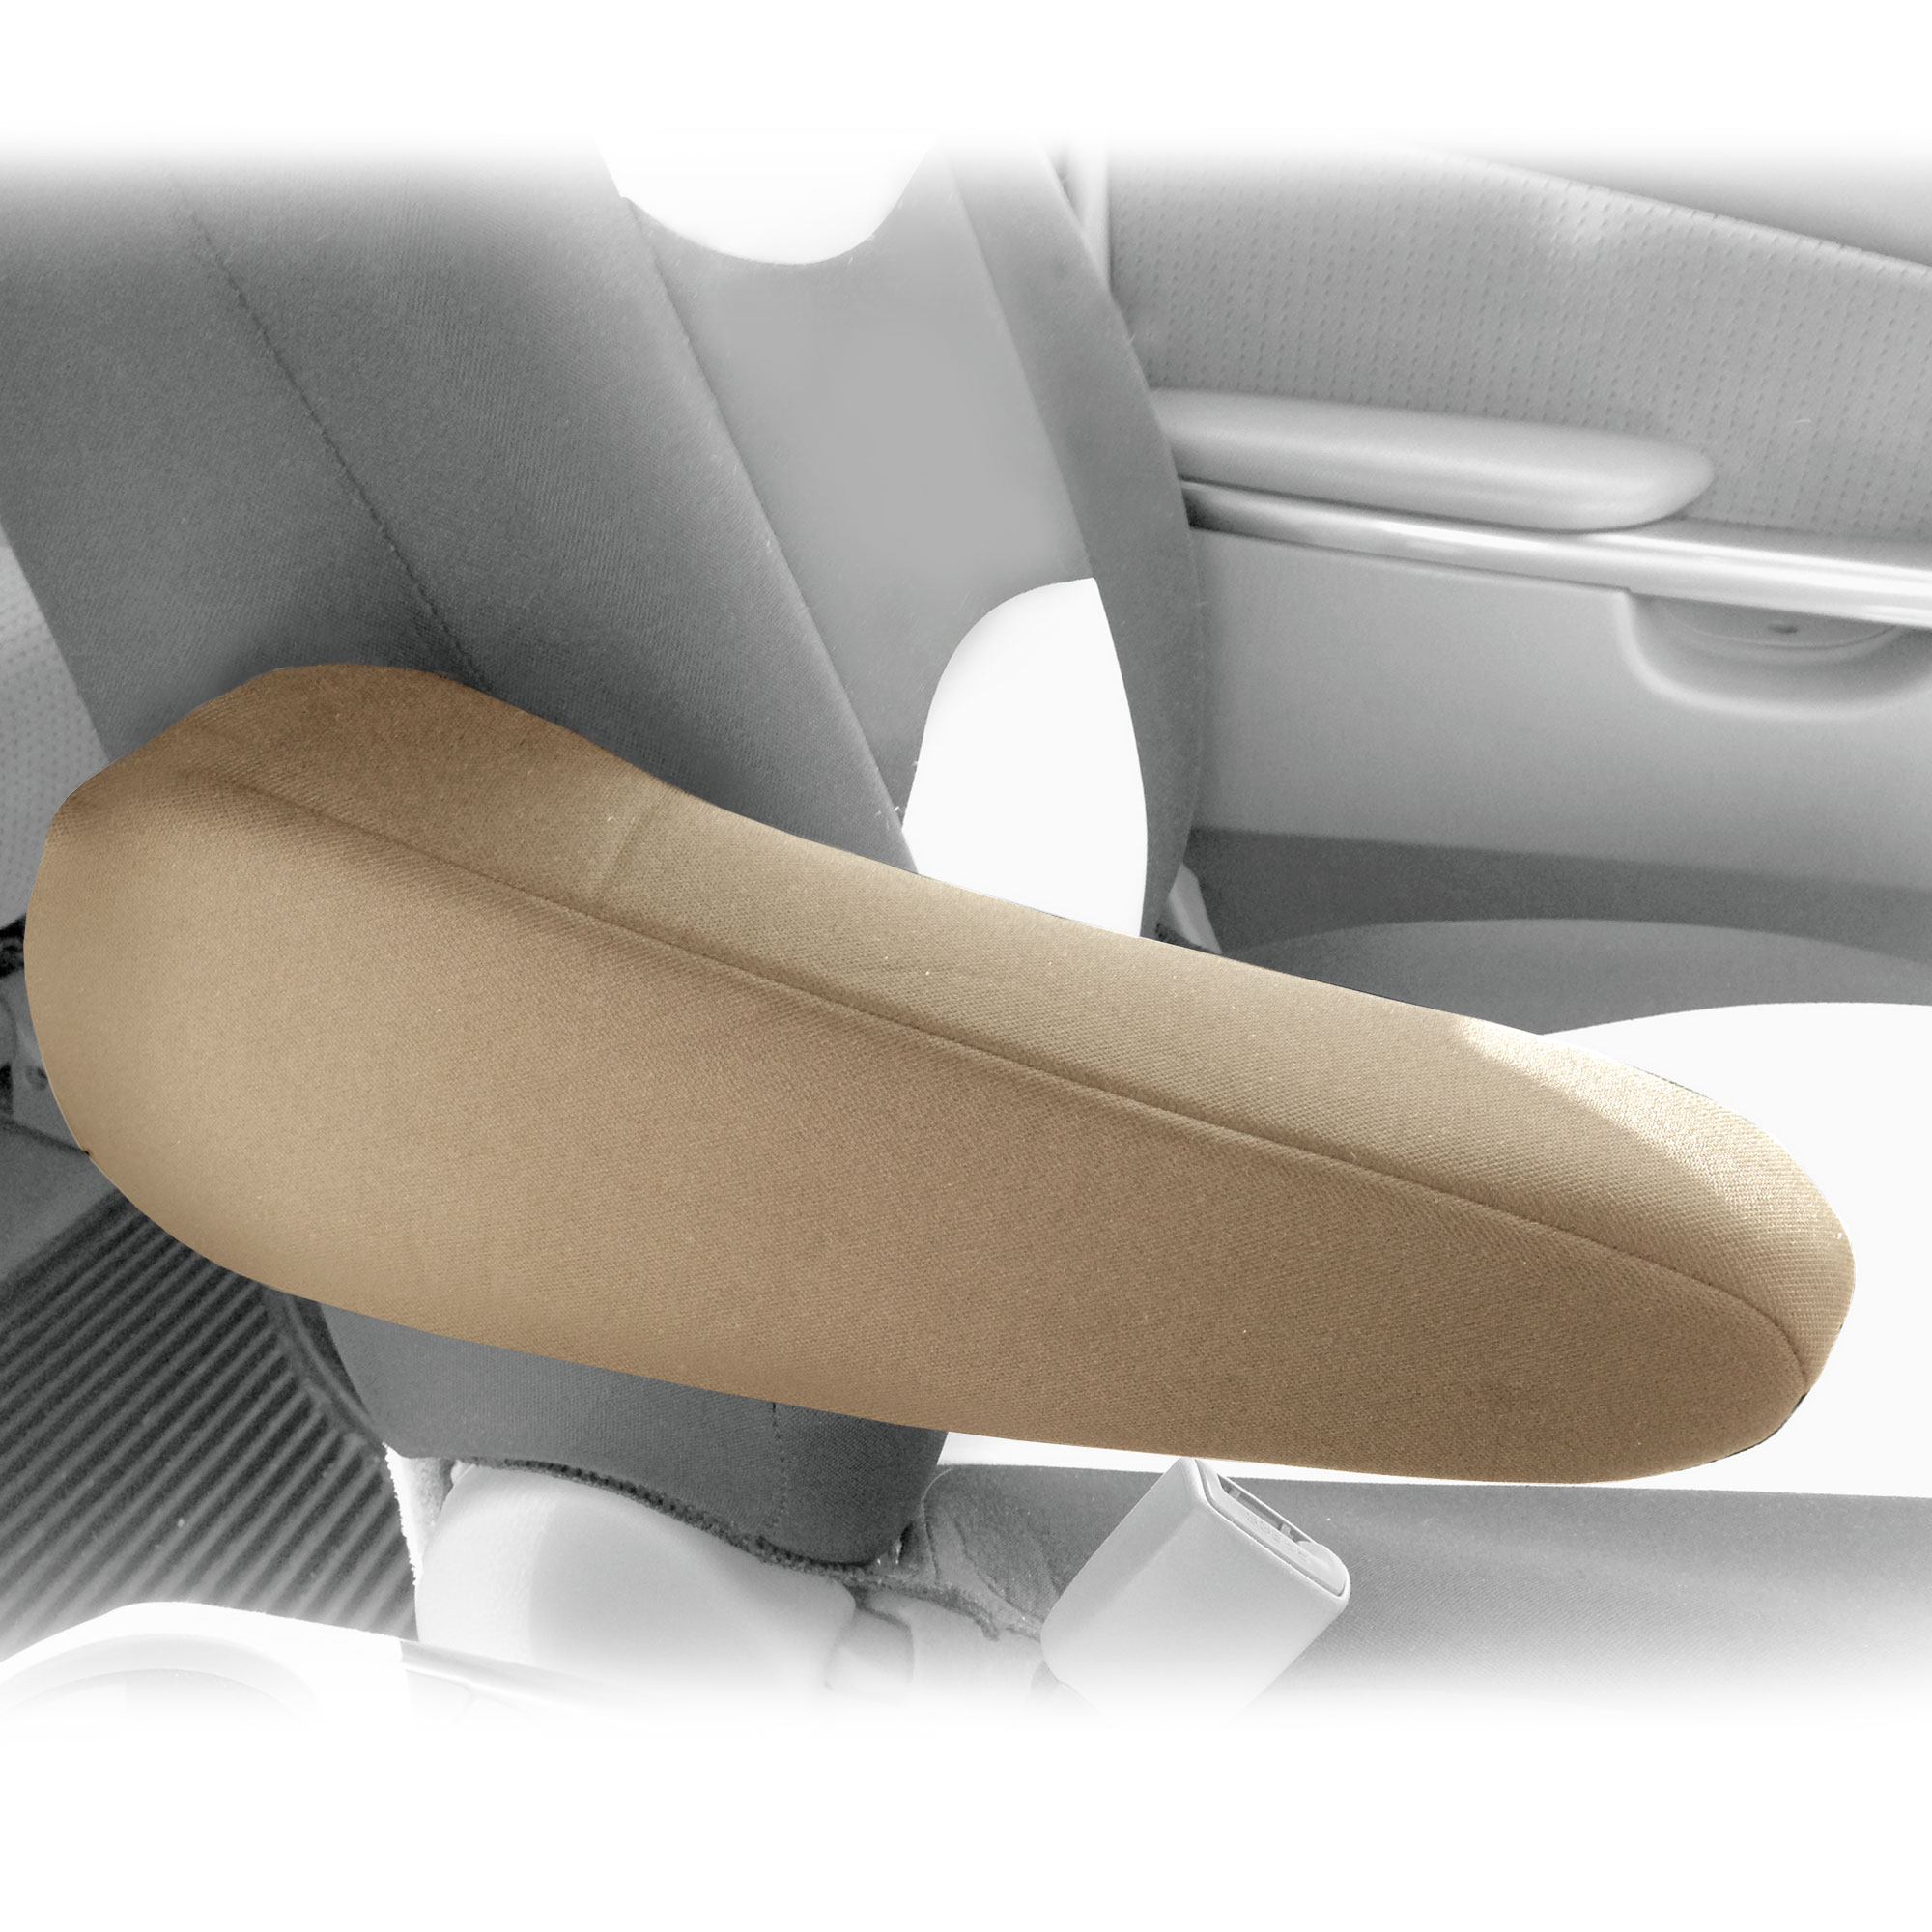 FH Group Cloth Auto Armrest Cover for Car Van Truck Set of 2, One Pair, 3 Colors